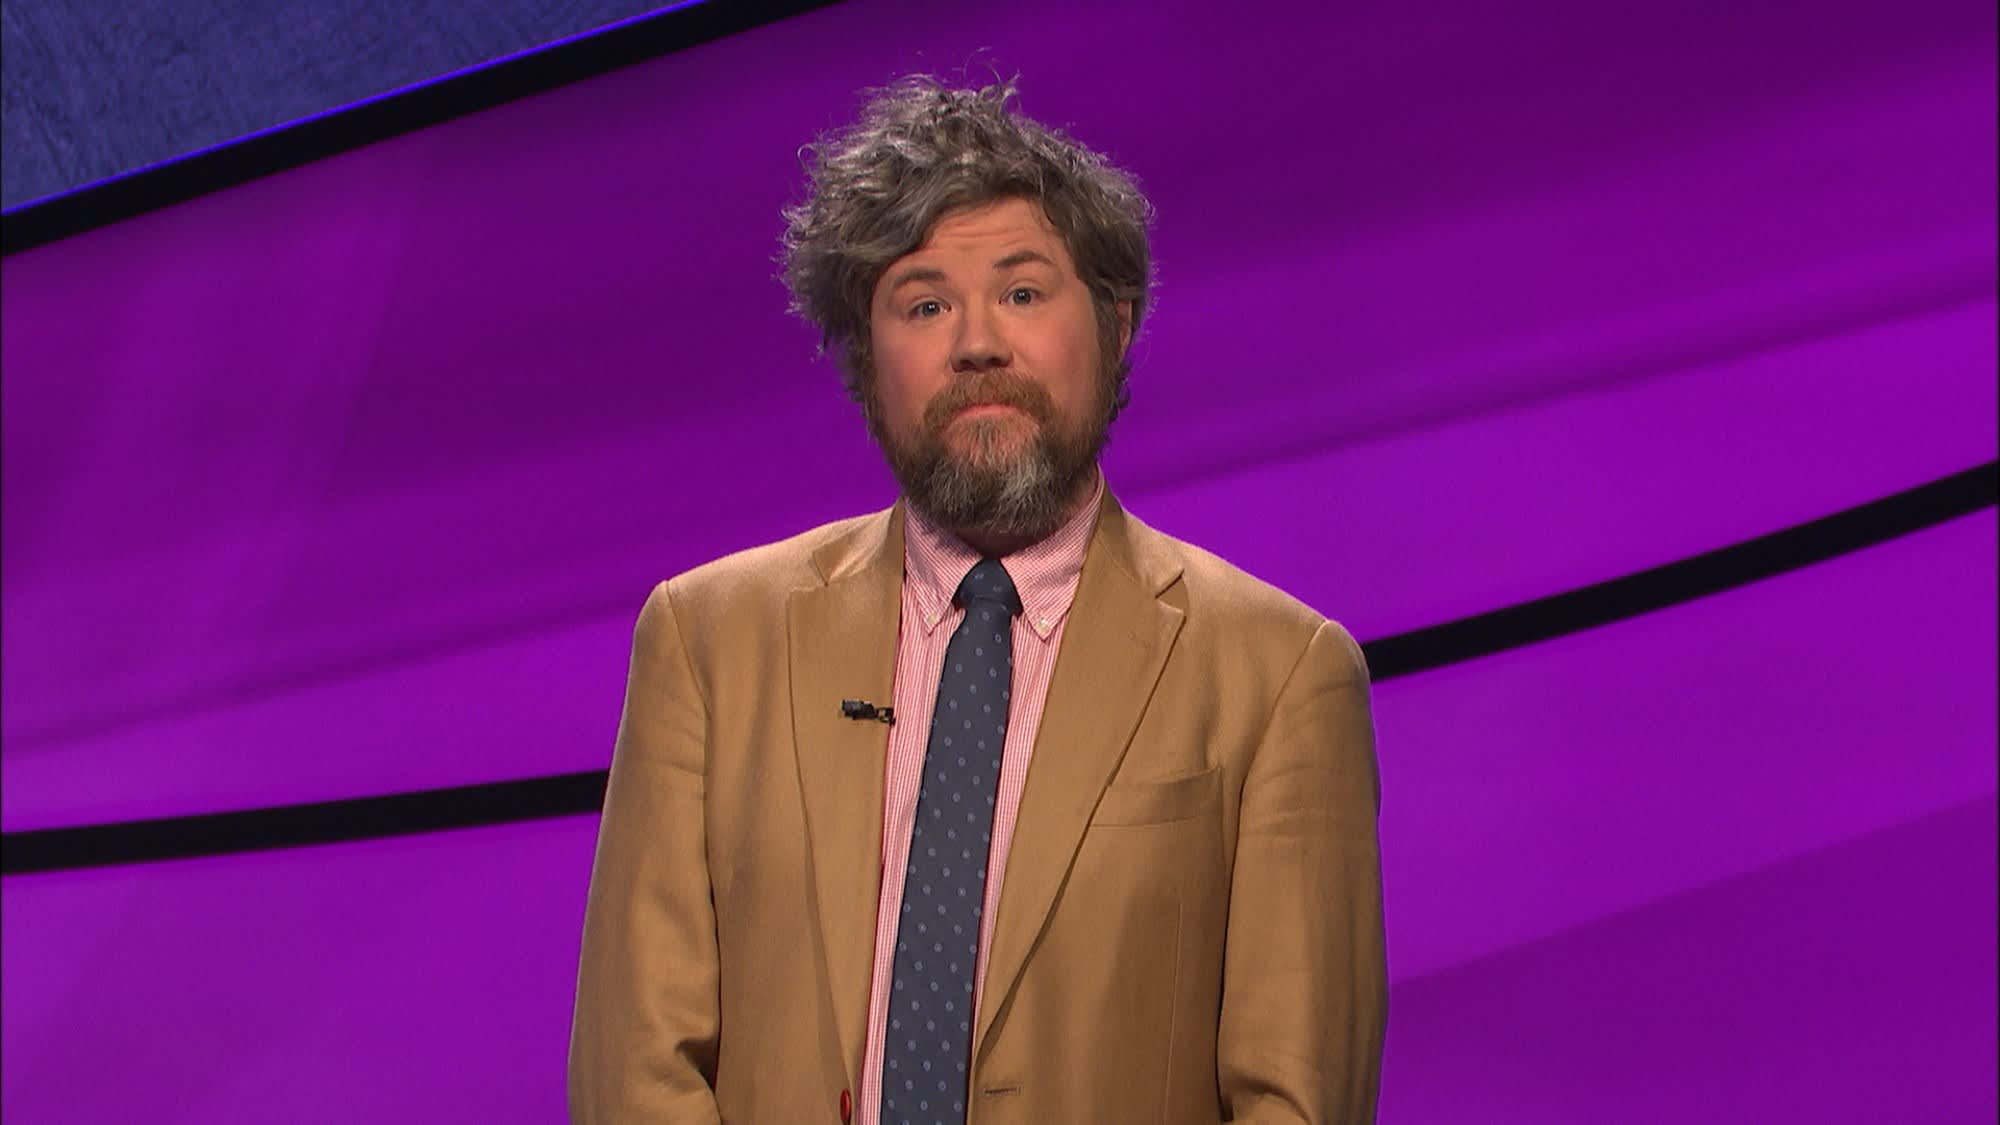 Jeopardy Champ Austin Rogers Won 400k And Kept His Bartending Job